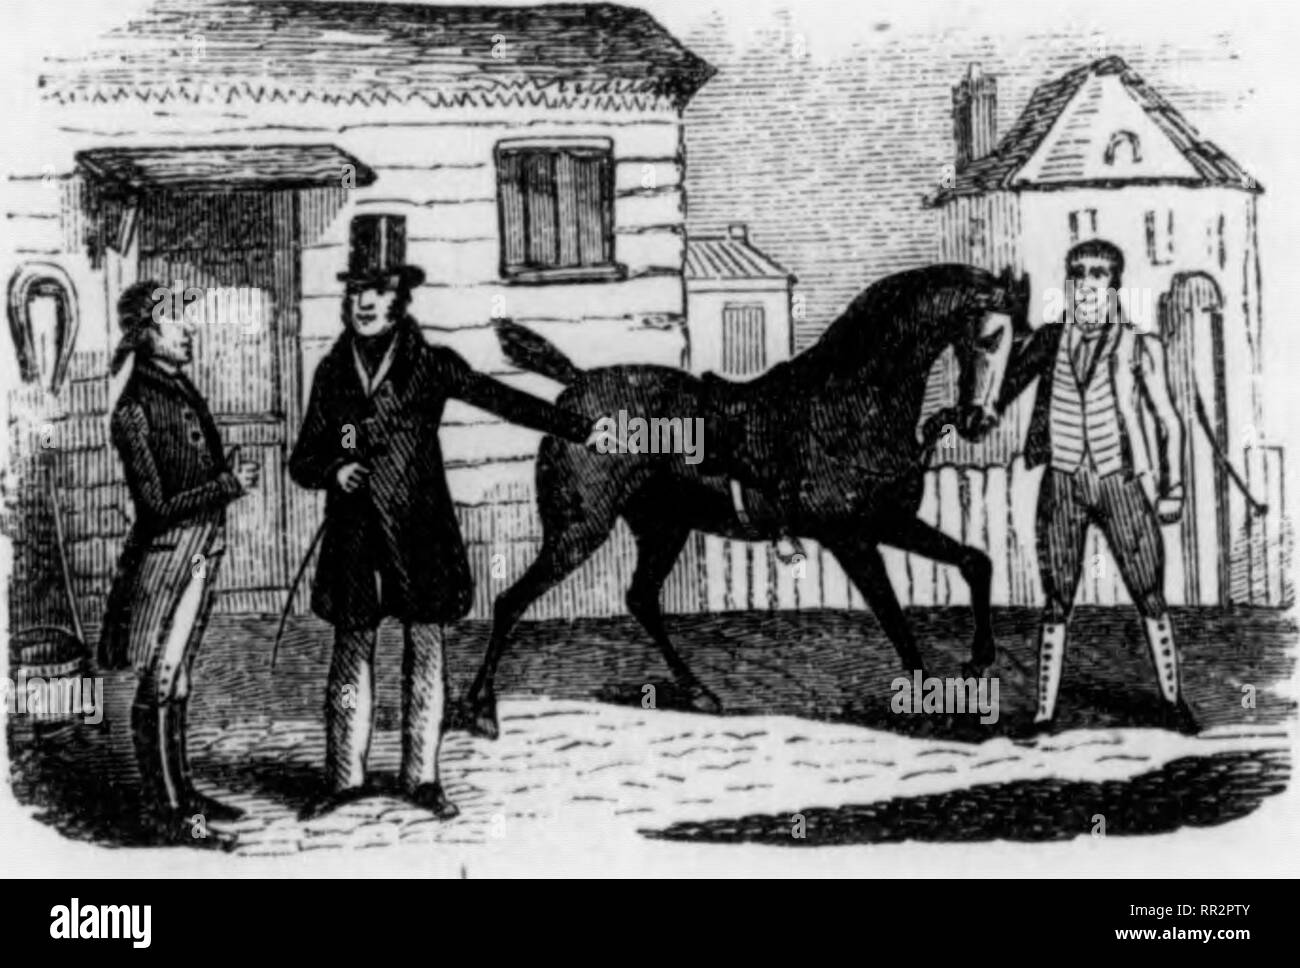 """. The adventures of a gentleman in search of a horse. Horses. 10 THE ADVENTURES OF A GENTLEMAN advertisements of the papers. Cobs, hunters, and hacks, were as plentiful as blackberries in Septem- ber. The difficulty was only where to choose. *' The neatest little cob in London,"""" """" the best hack that ever was mounted,"""" """" that well-known hunter Tantivy, equal to fifteen stone up to any hounds,'* all offered themselves to my delighted eyes: and away I went, to try them all and buy the best. My reader must excuse me for a little digression, to give him some account of myself, s - Stock Image"""